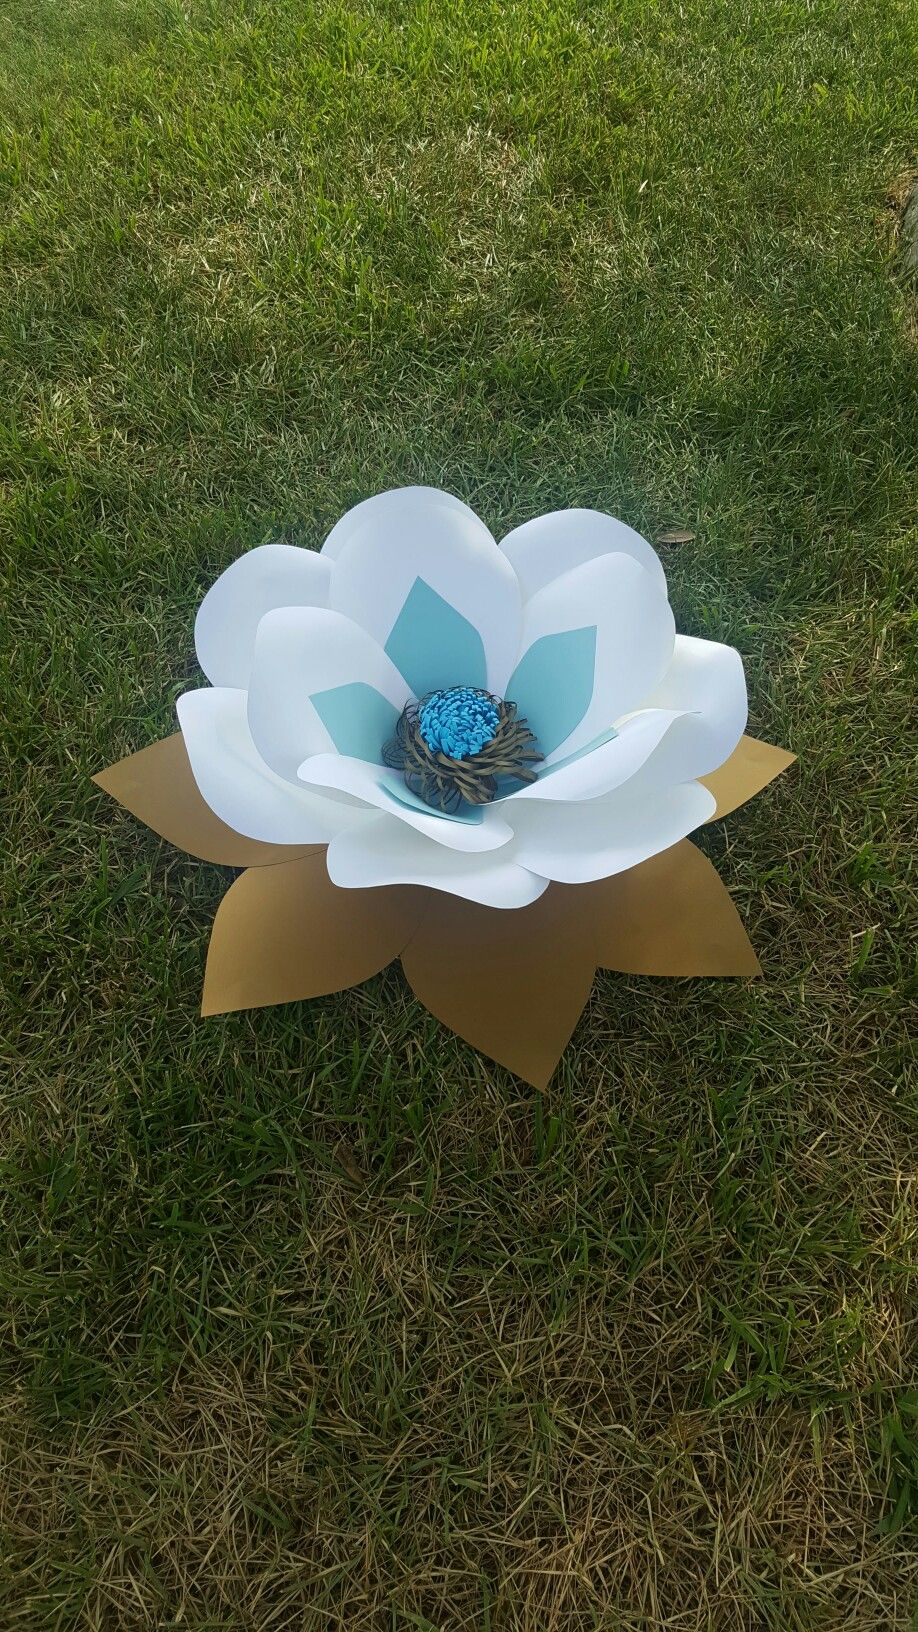 aaliyah extra large paper flower comes in diffrent colors large paper flowers dhlflorist Choice Image